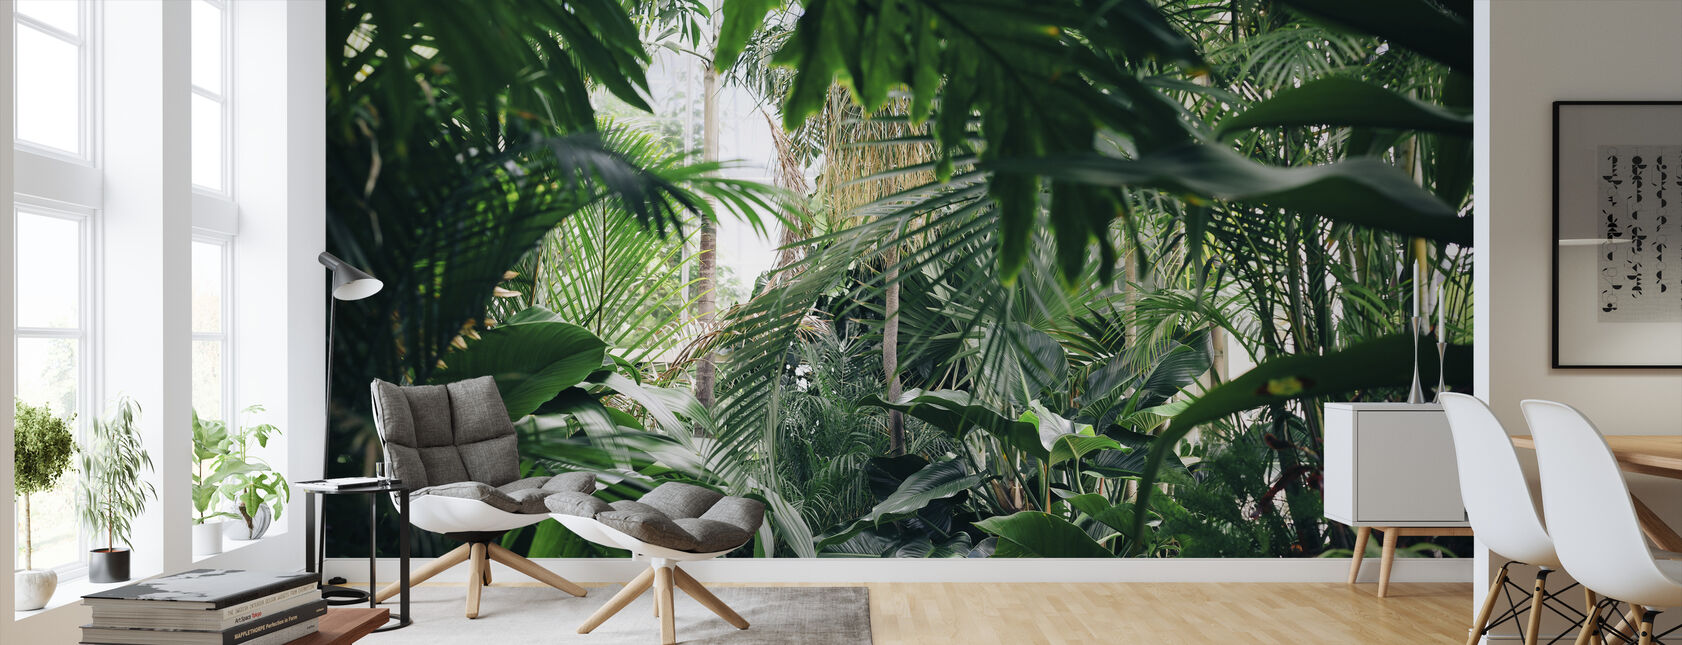 Jungle Planten - Behang - Woonkamer